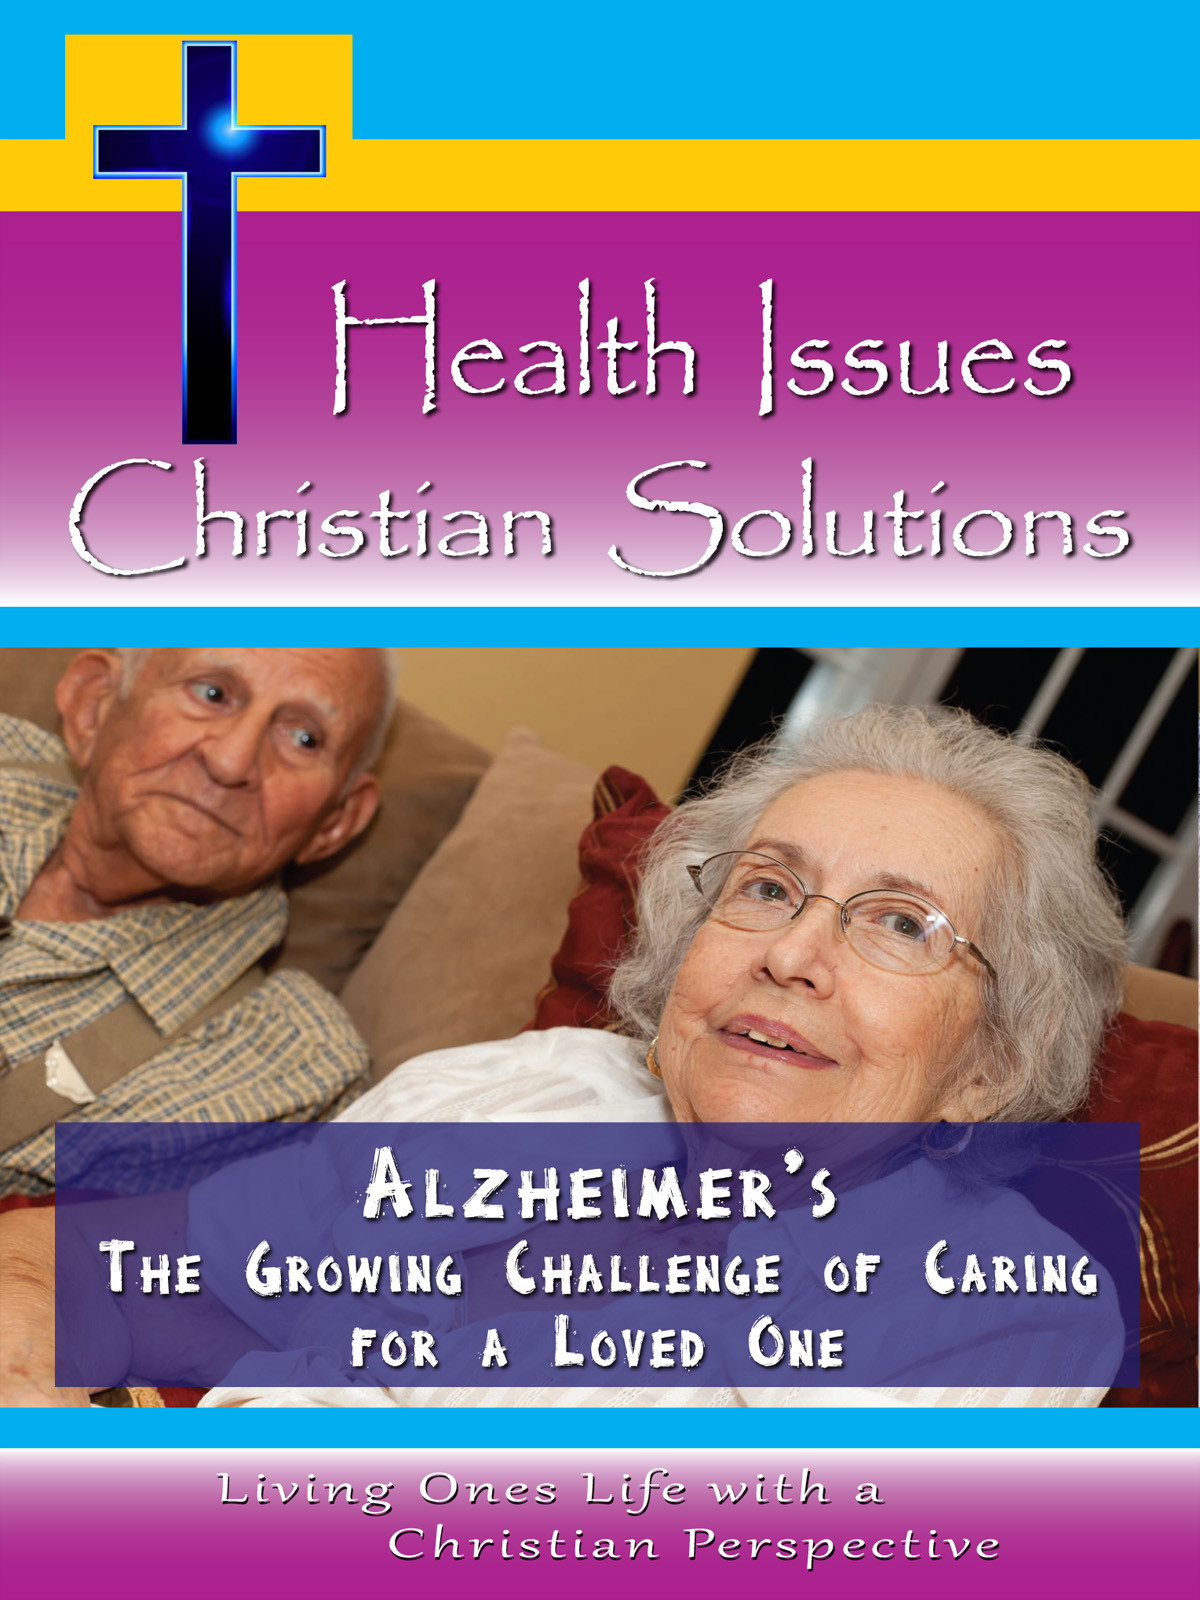 CH10030 - Alzheimer's The Growing Challenge of Caring for a Loved One